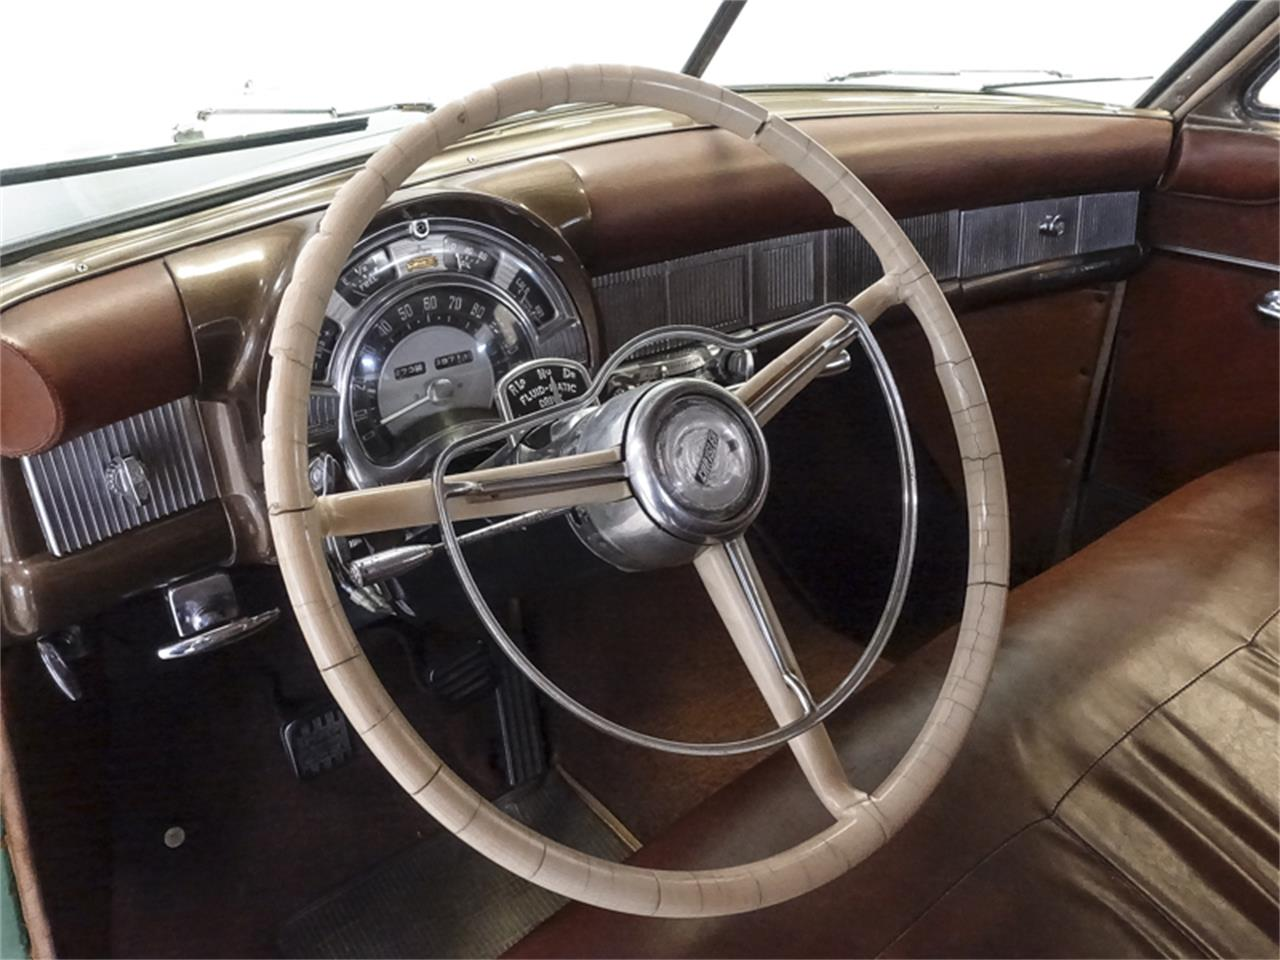 1952 Chrysler Saratoga for sale in St. Louis, MO – photo 23